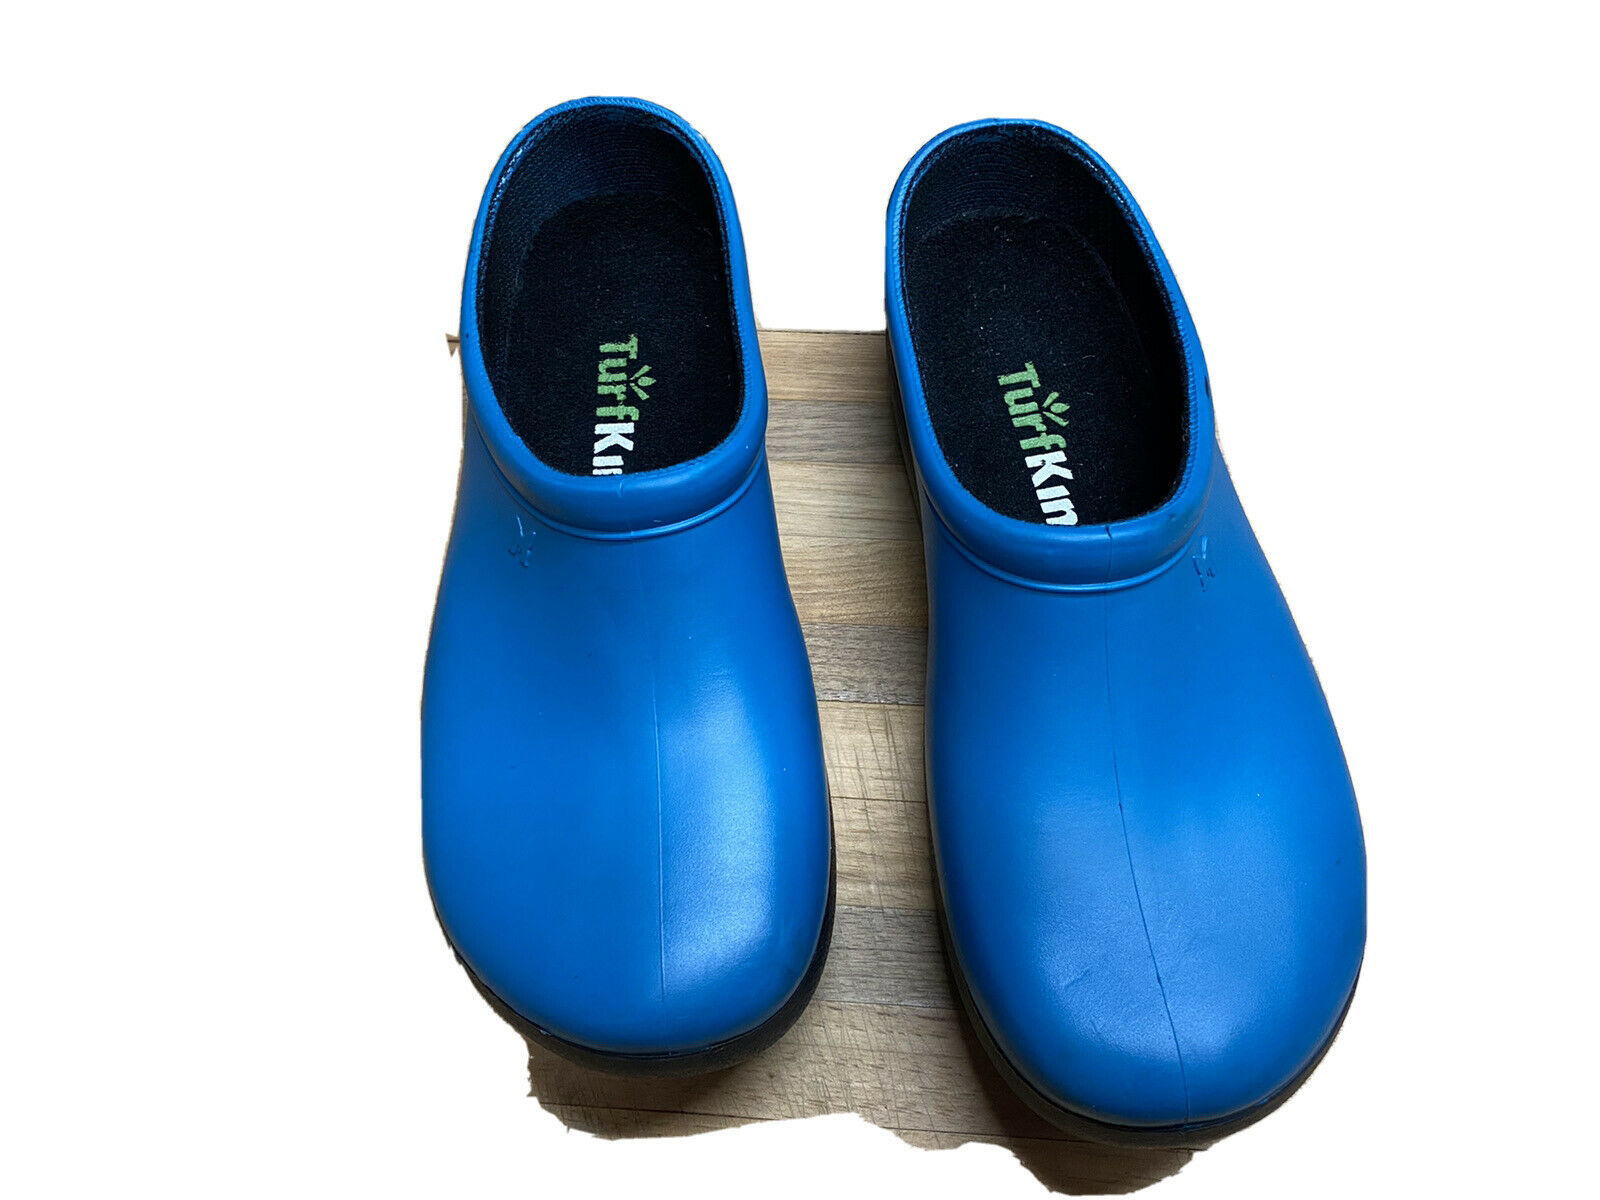 Slogger's Turf king Women's Rubber Clogs Size 8 Blue Slip-on Outdoor Mules Shoes